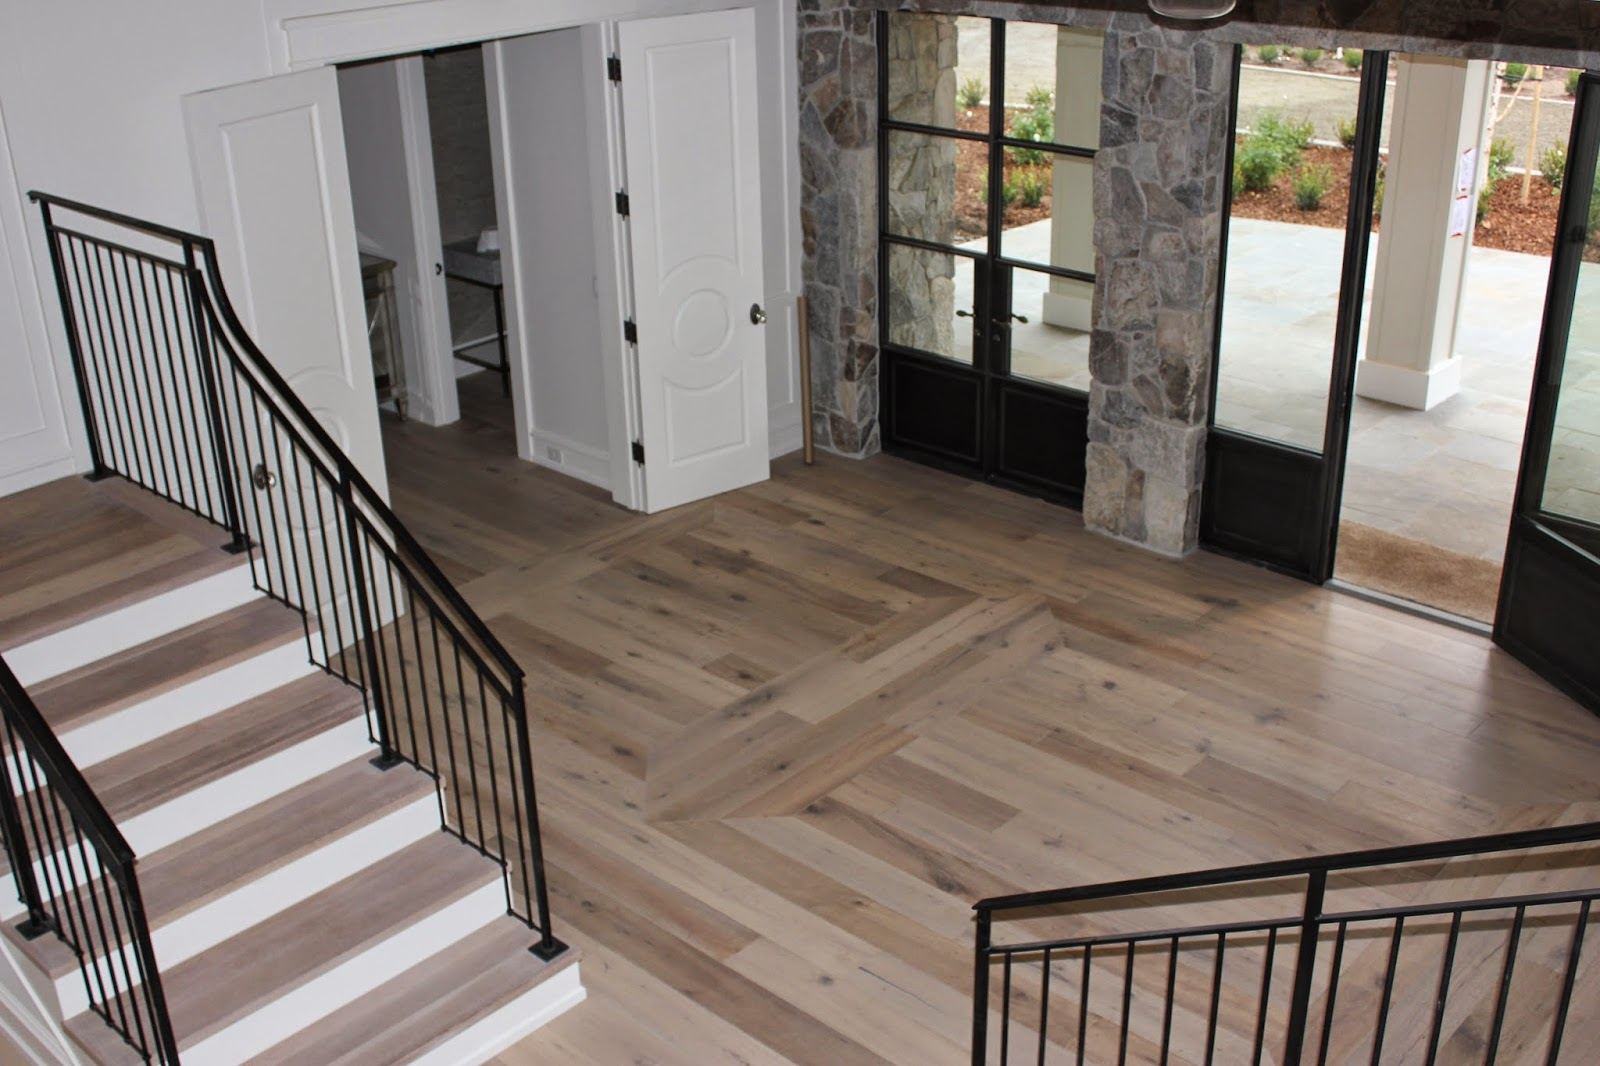 The Double Staircase Was Designed To Match The Floor Perfectly. The  Hardwood Entry Has A Unique Design That You Can See ...